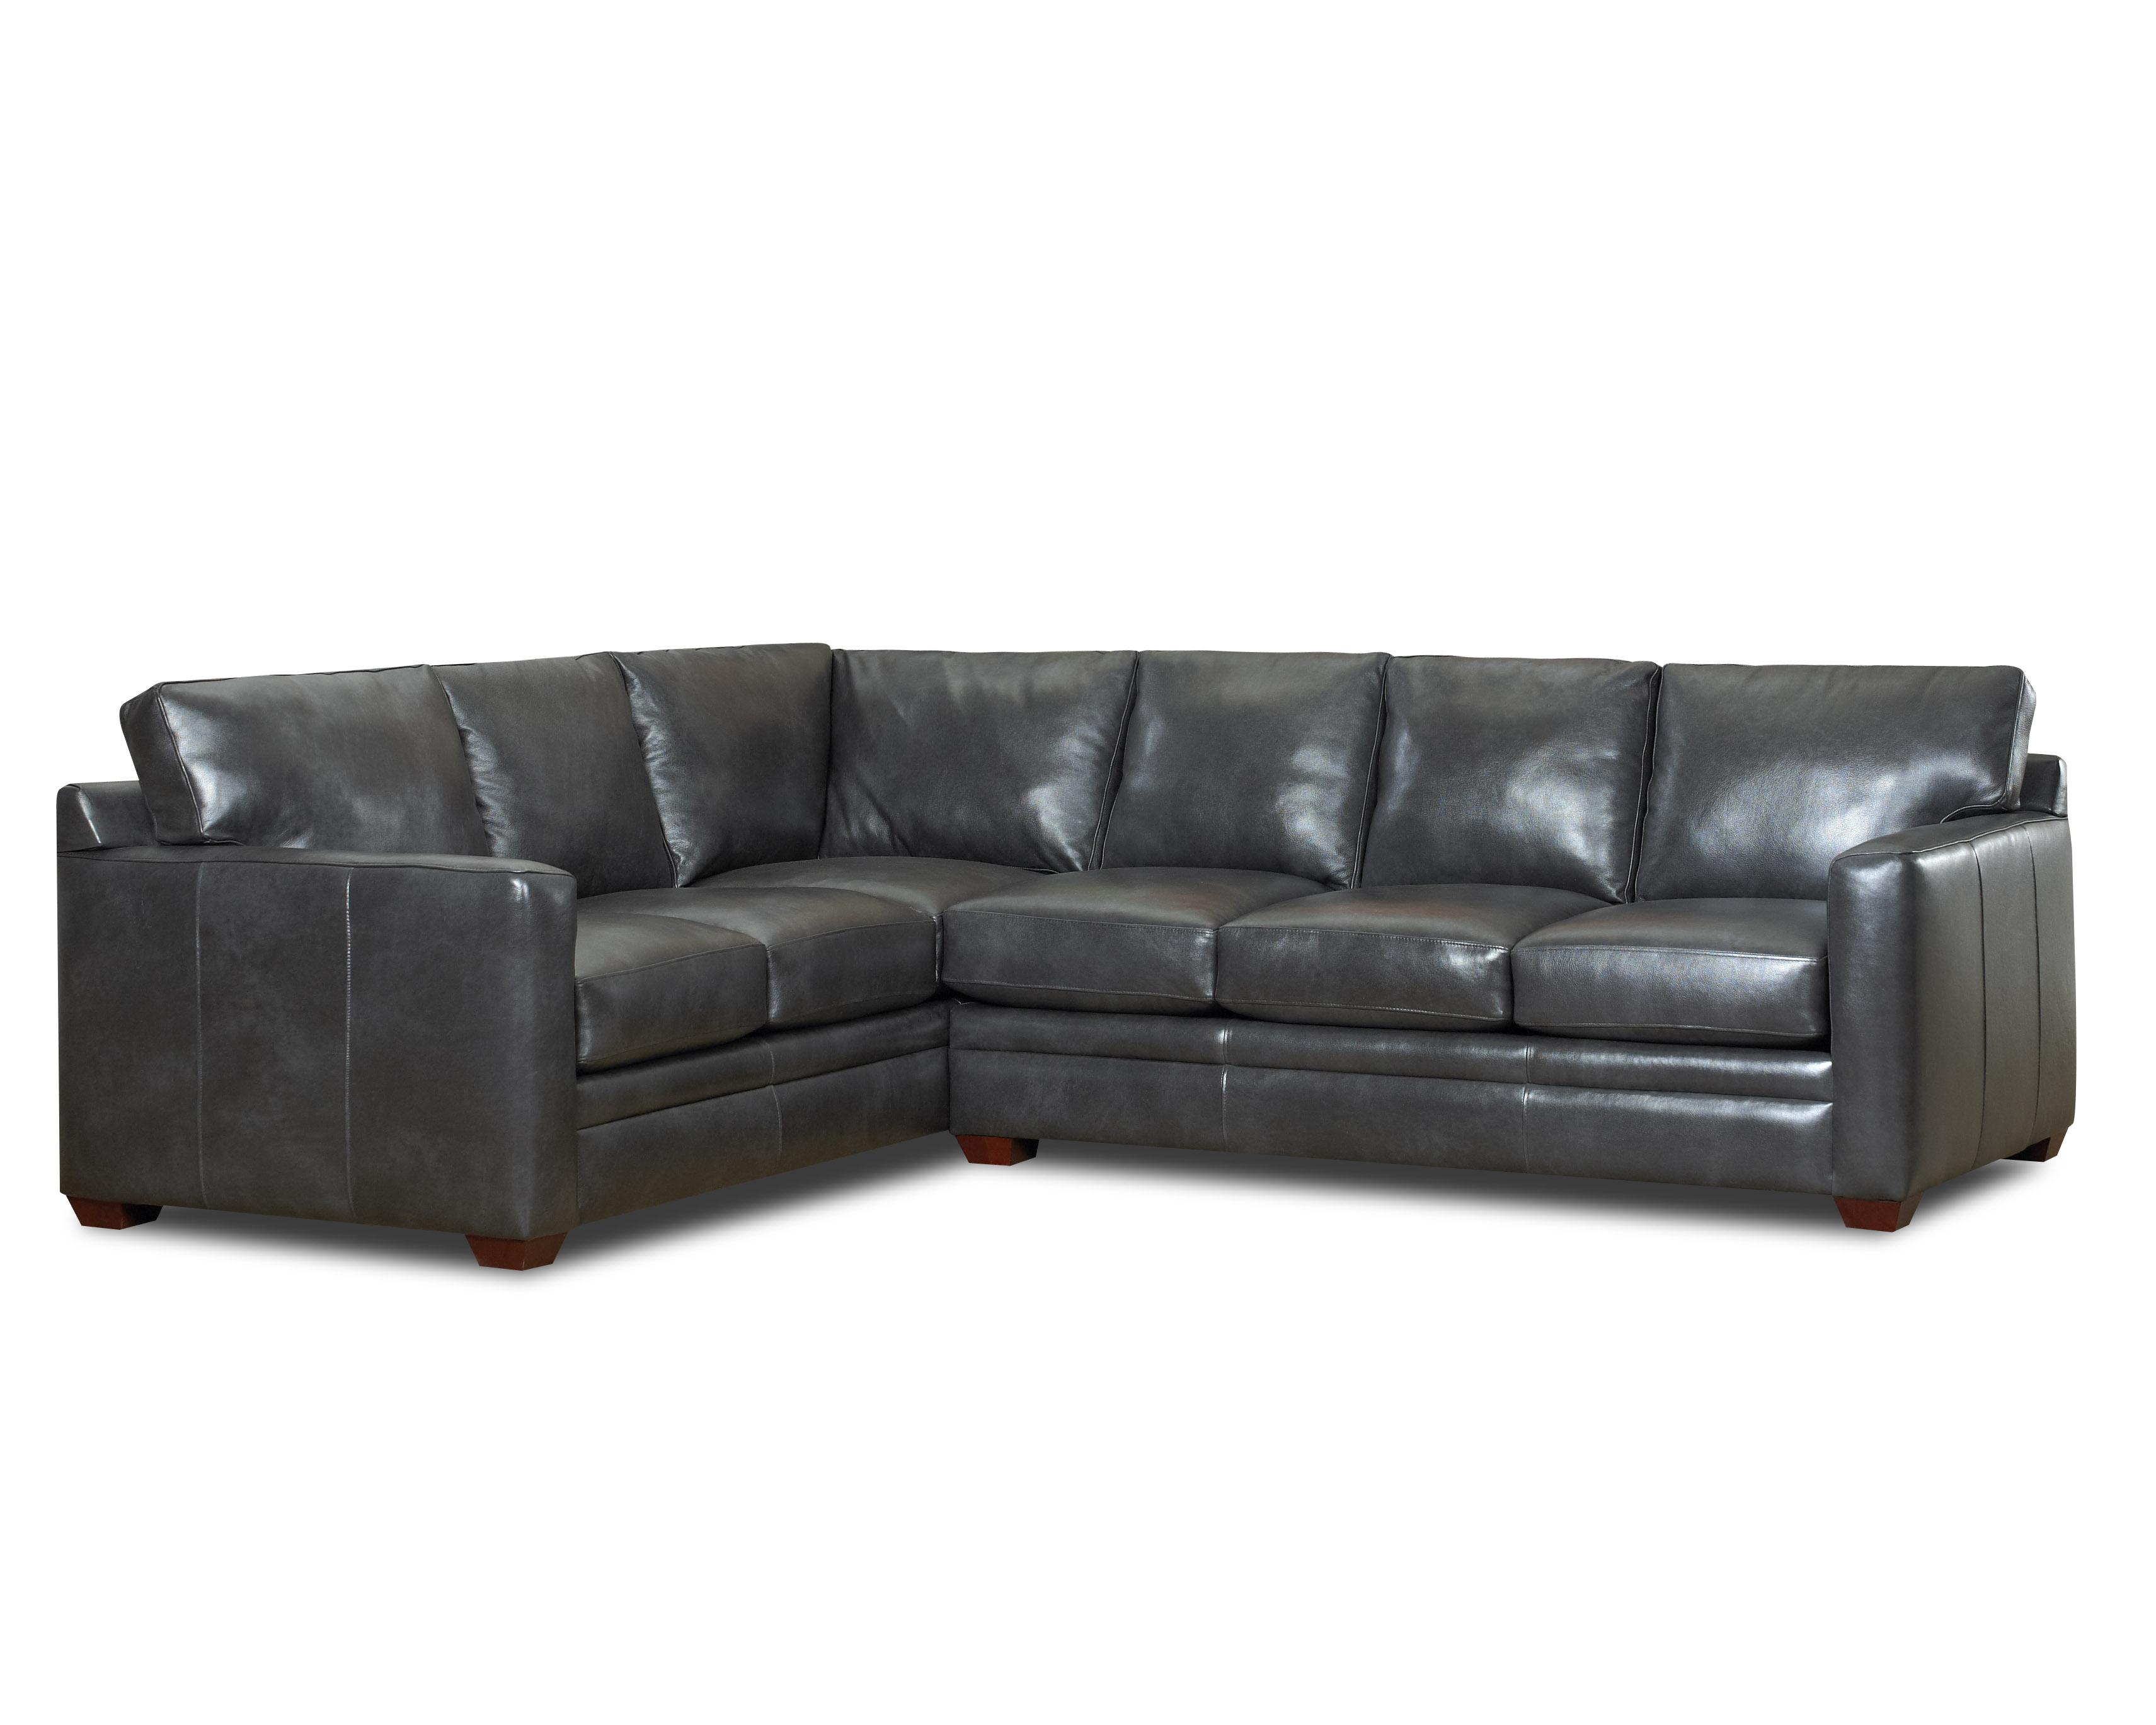 Klaussner Fedora 2 Pc Sectional Sofa - Item Number: LD50900R CRNS+LT50900L S